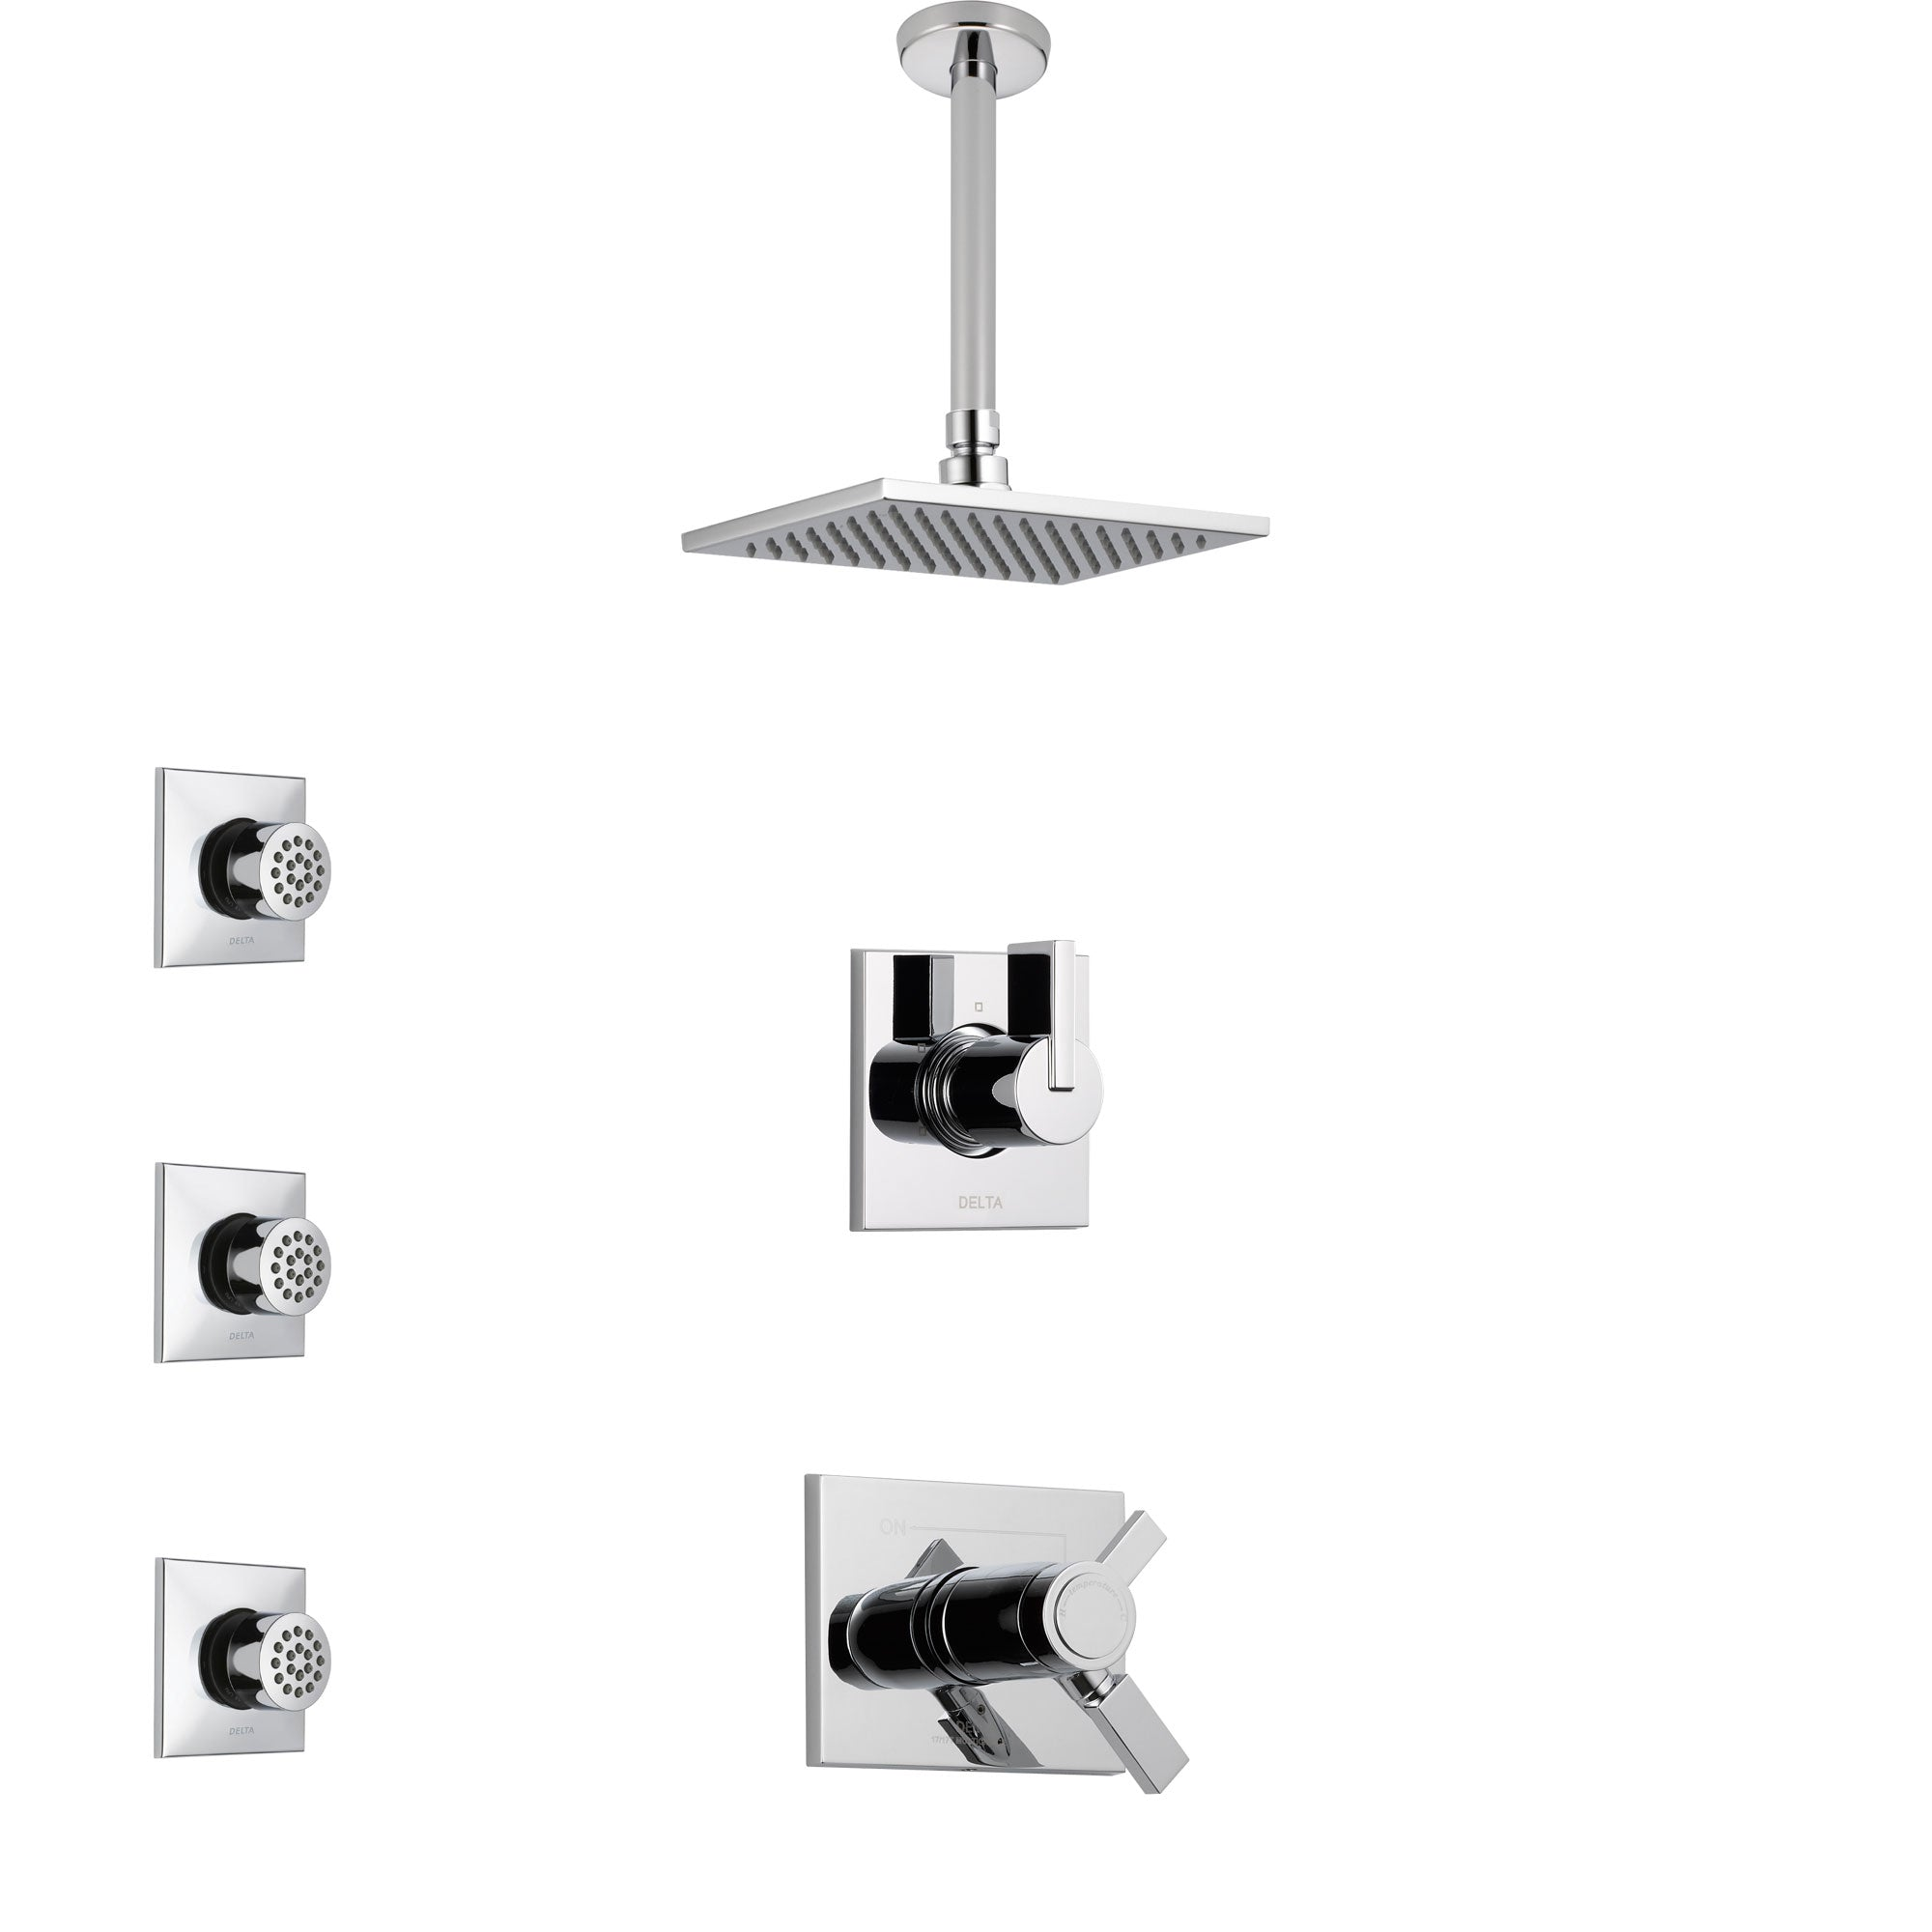 Delta Vero Chrome Finish Shower System with Dual Thermostatic Control Handle, Diverter, Ceiling Mount Showerhead, and 3 Body Sprays SS17T5317